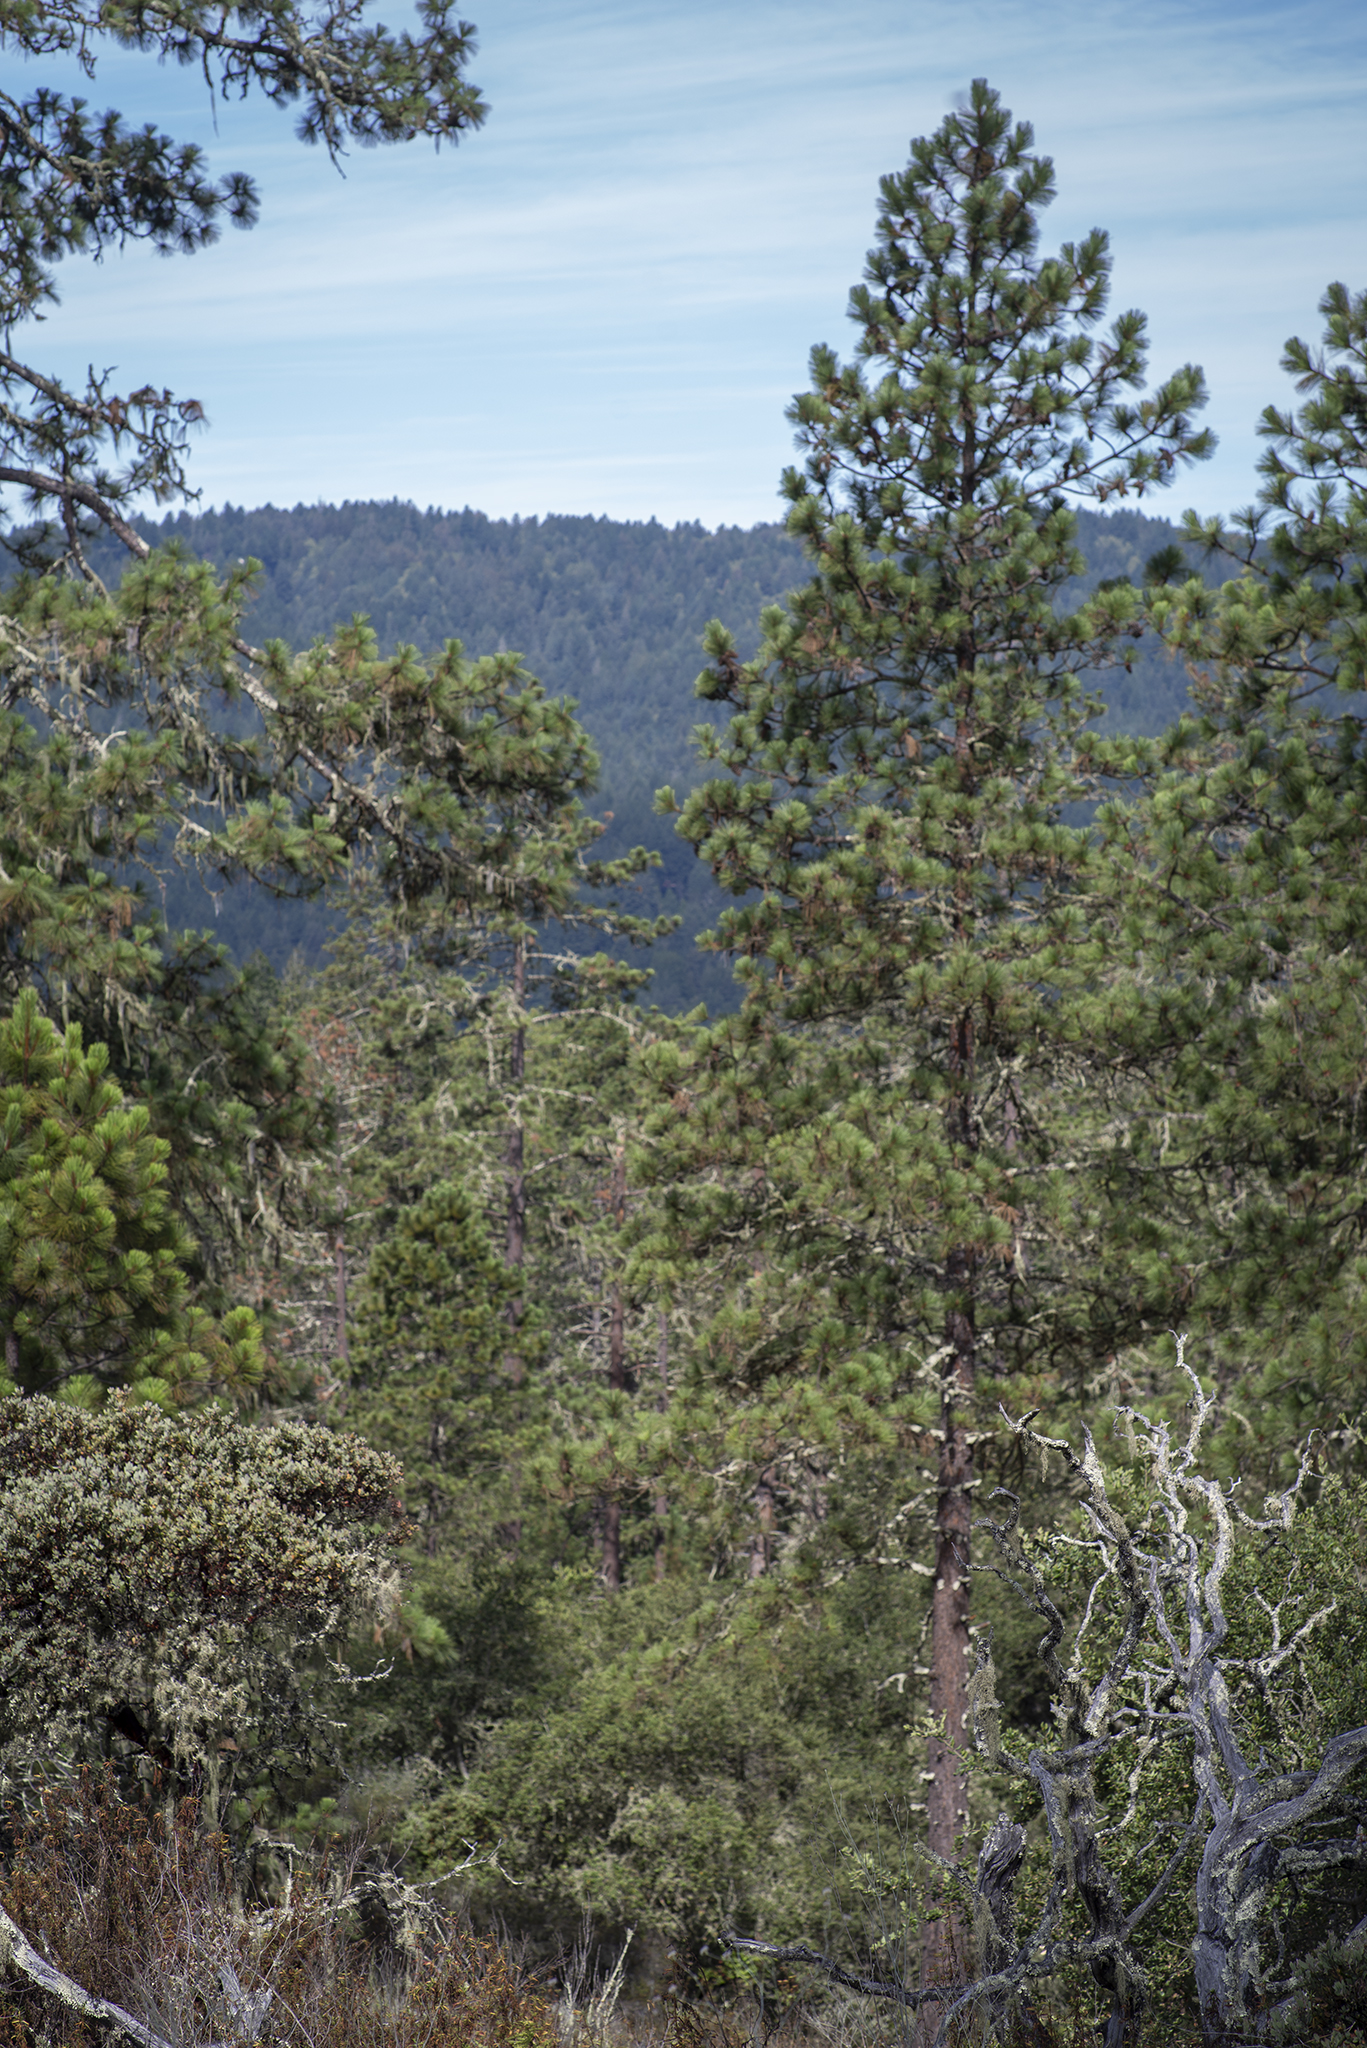 Volunteers summitted Mount Hermon for a view of the ponderosa pine forest.